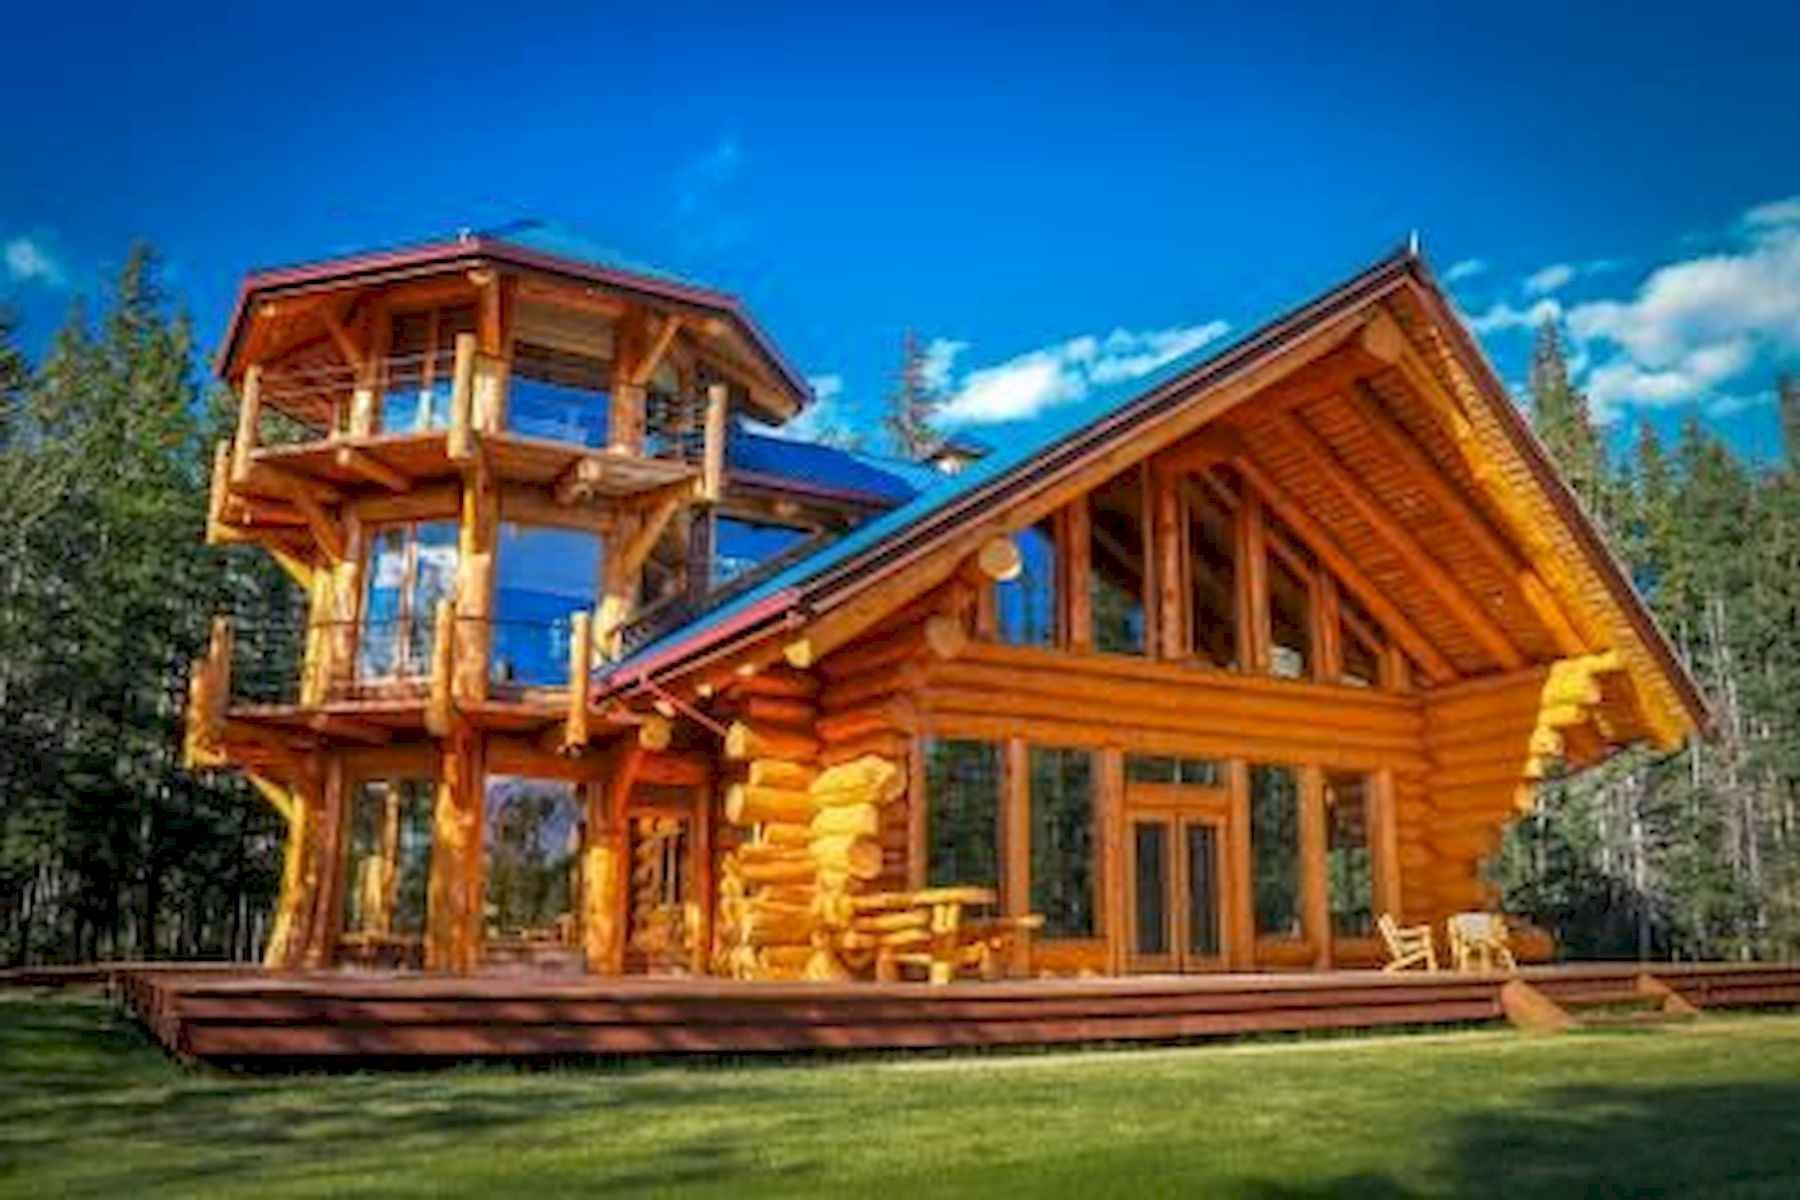 75 Best Log Cabin Homes Plans Design Ideas 52 Small Log Cabin Log Cabin Homes Log Cabin Designs